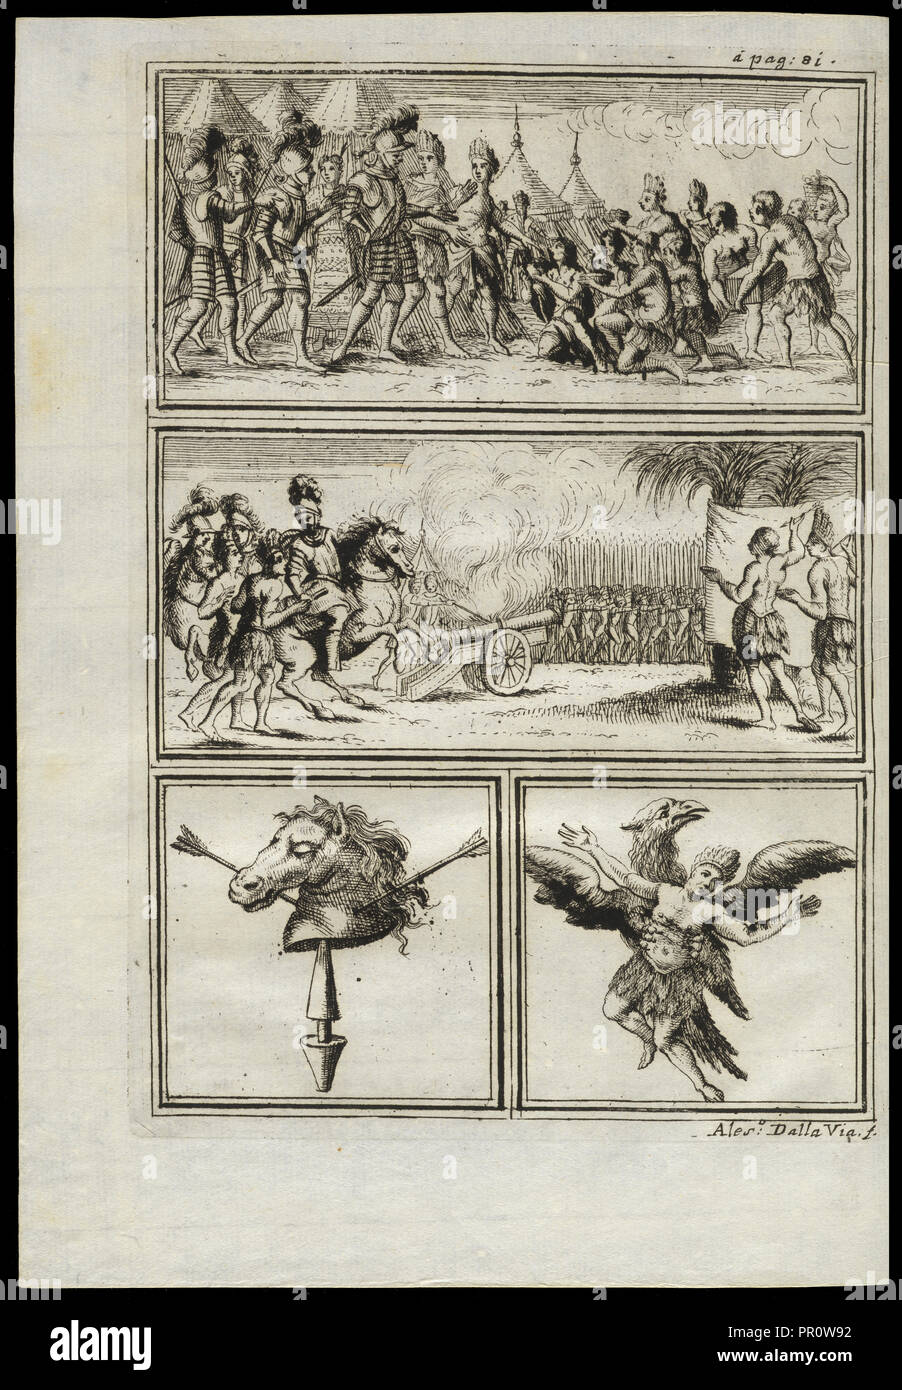 Cortés greeted by indigenous people, Battle scene with firing a cannon, Symbolic image of horse's head, Image of Montezuma - Stock Image